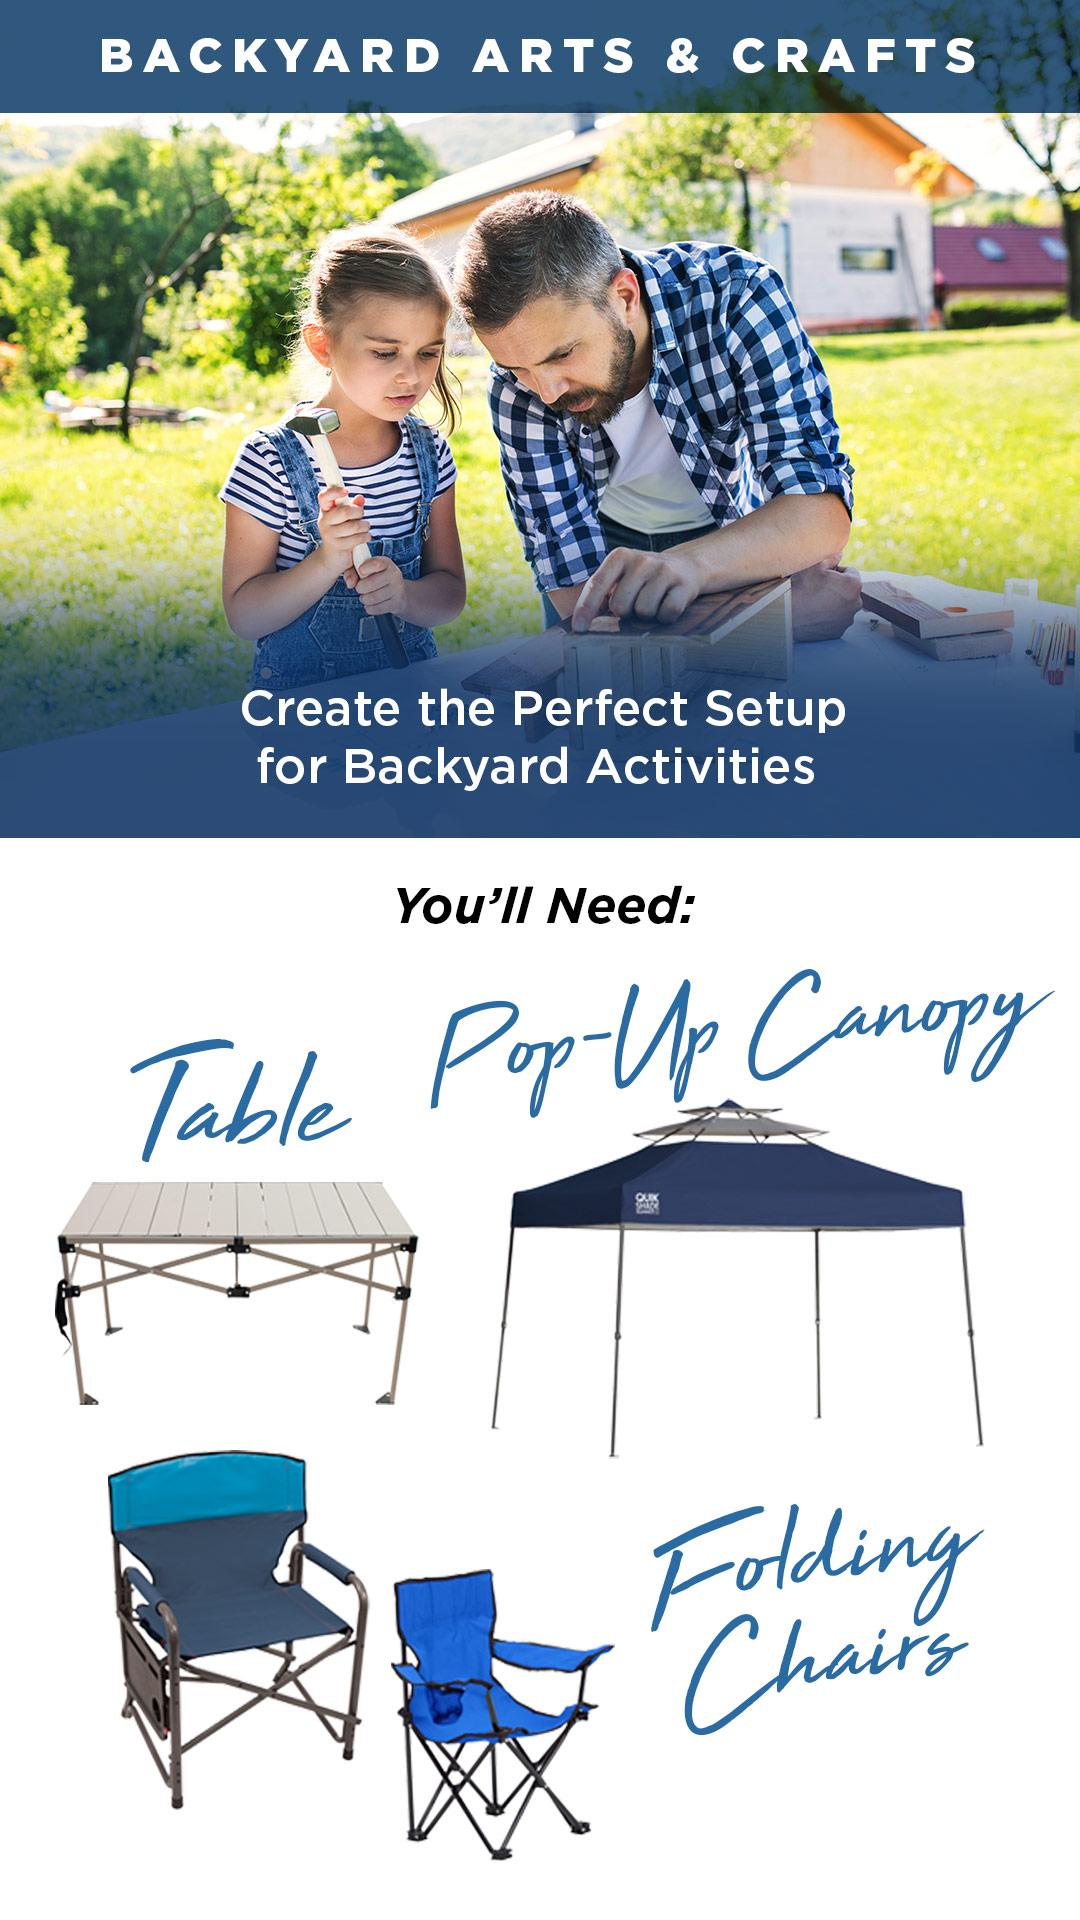 What you'll need for backyard arts and crafts